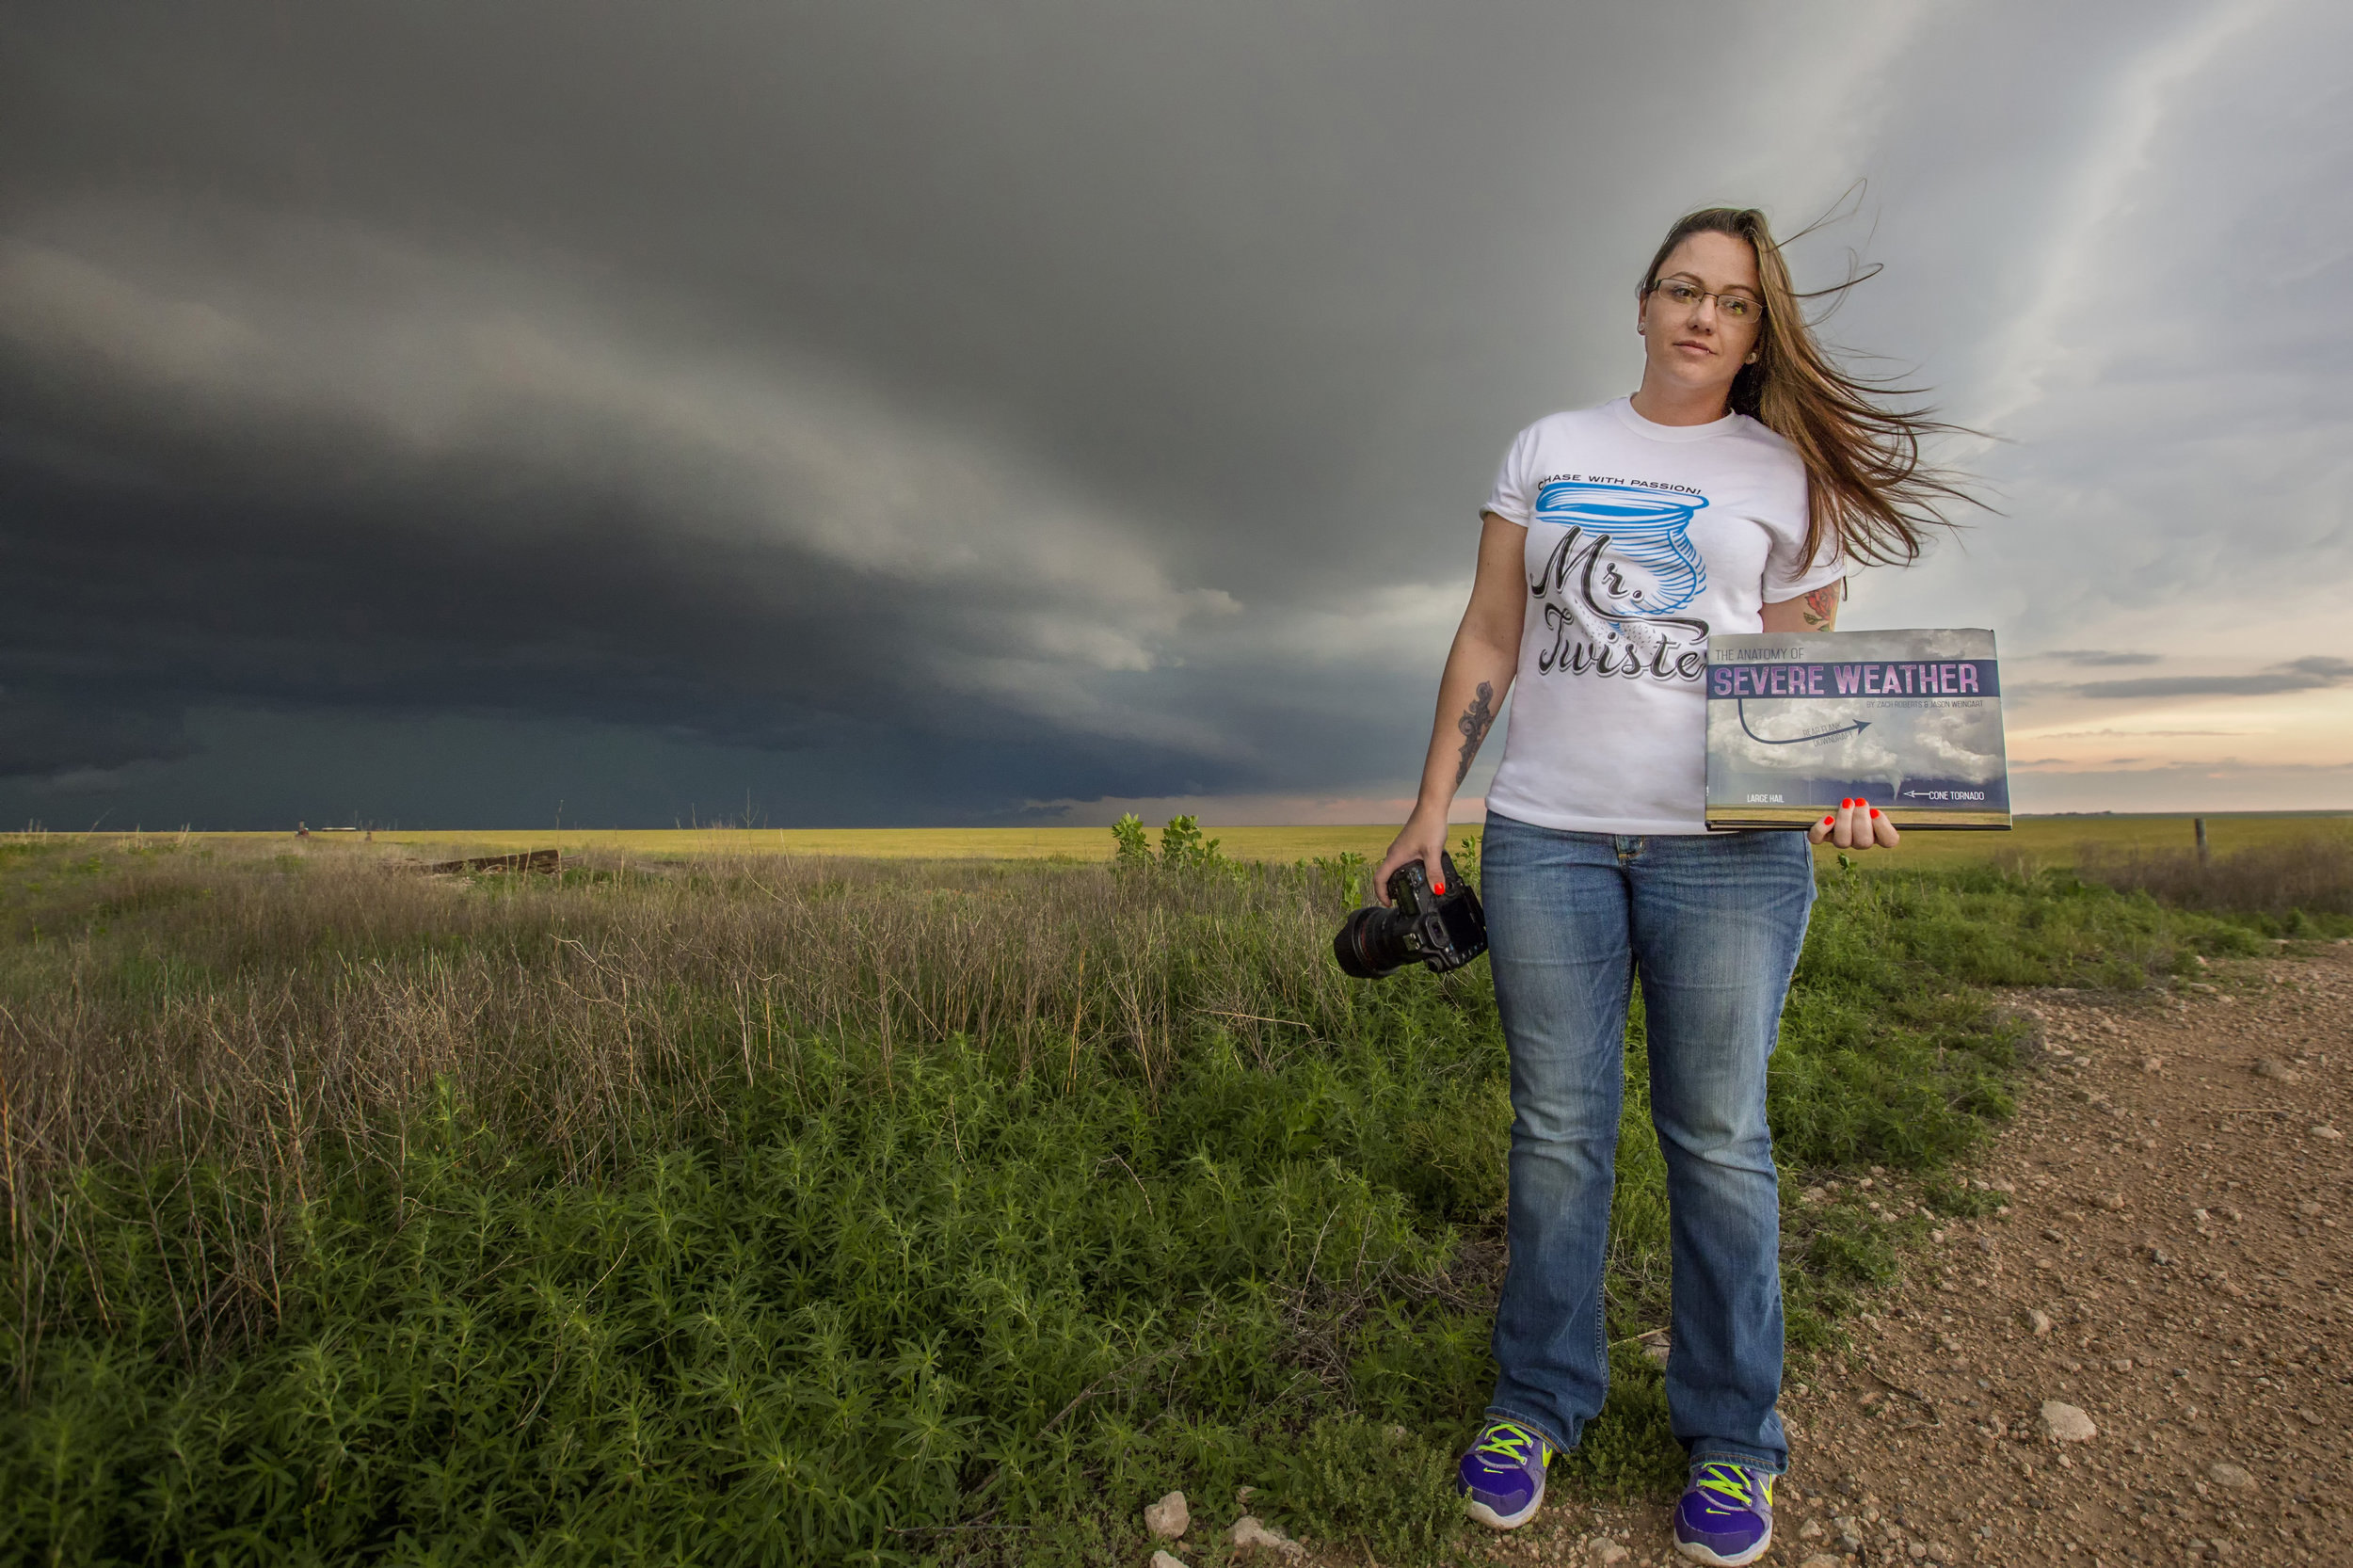 My beautiful Savannah with her copy in front of a supercell near Stratford, Tx.